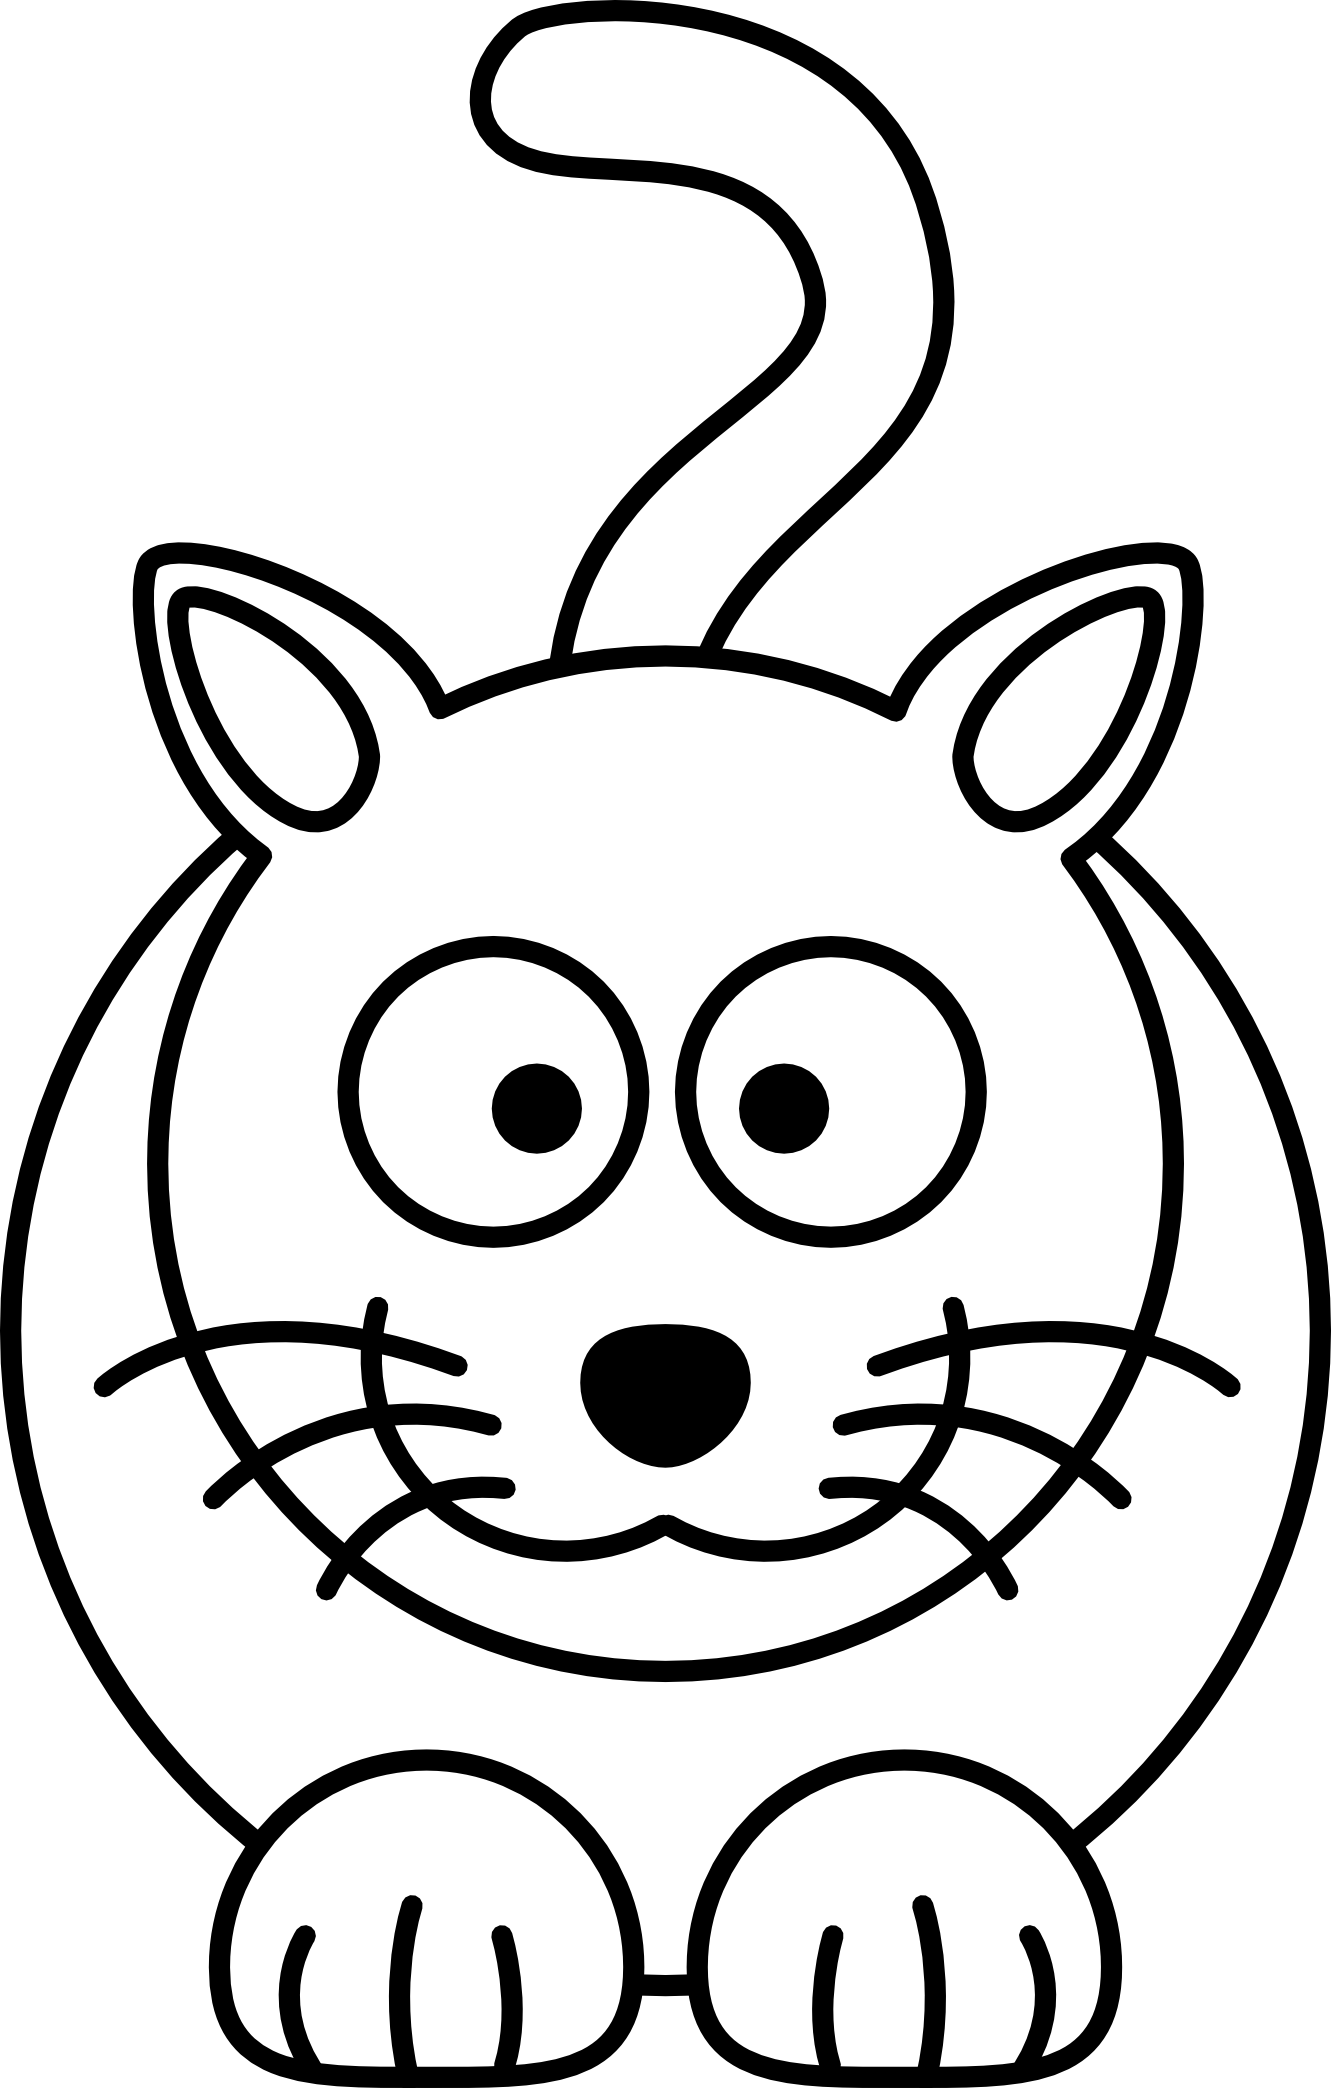 free simple line drawings line art coloring book colouring drawing px image vector clip - Free Cartoons For Toddlers